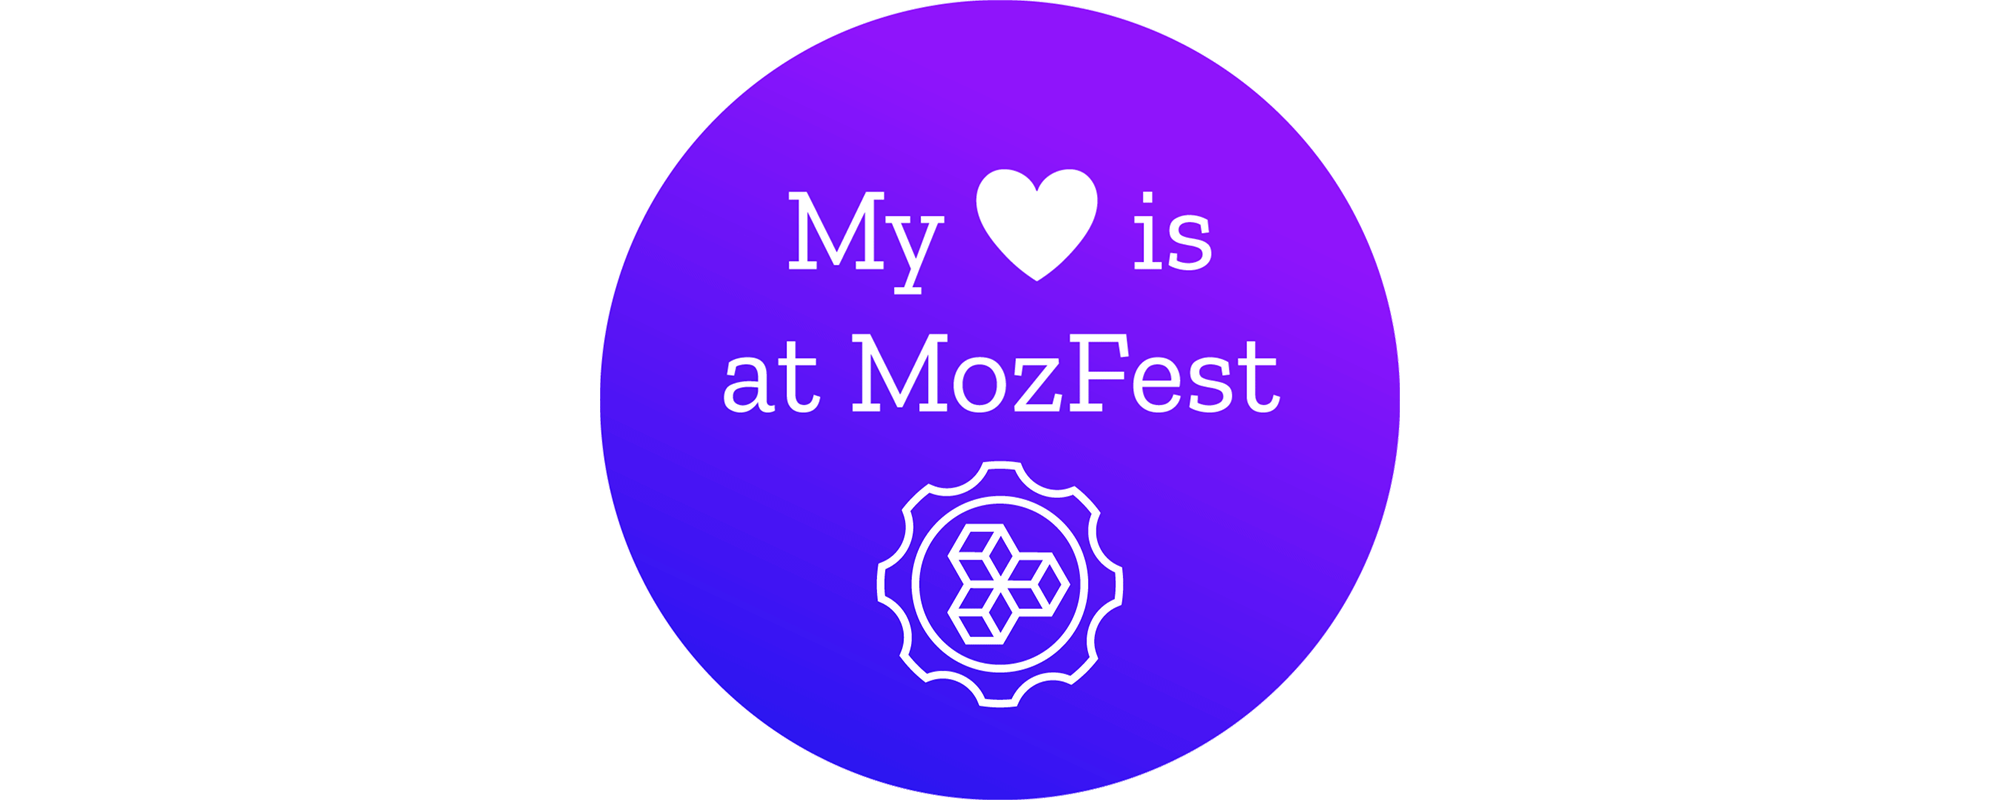 """purple circle with words """"My heart is at MozFest"""" where the heart is a shape. Underneath is the MozFest logo."""